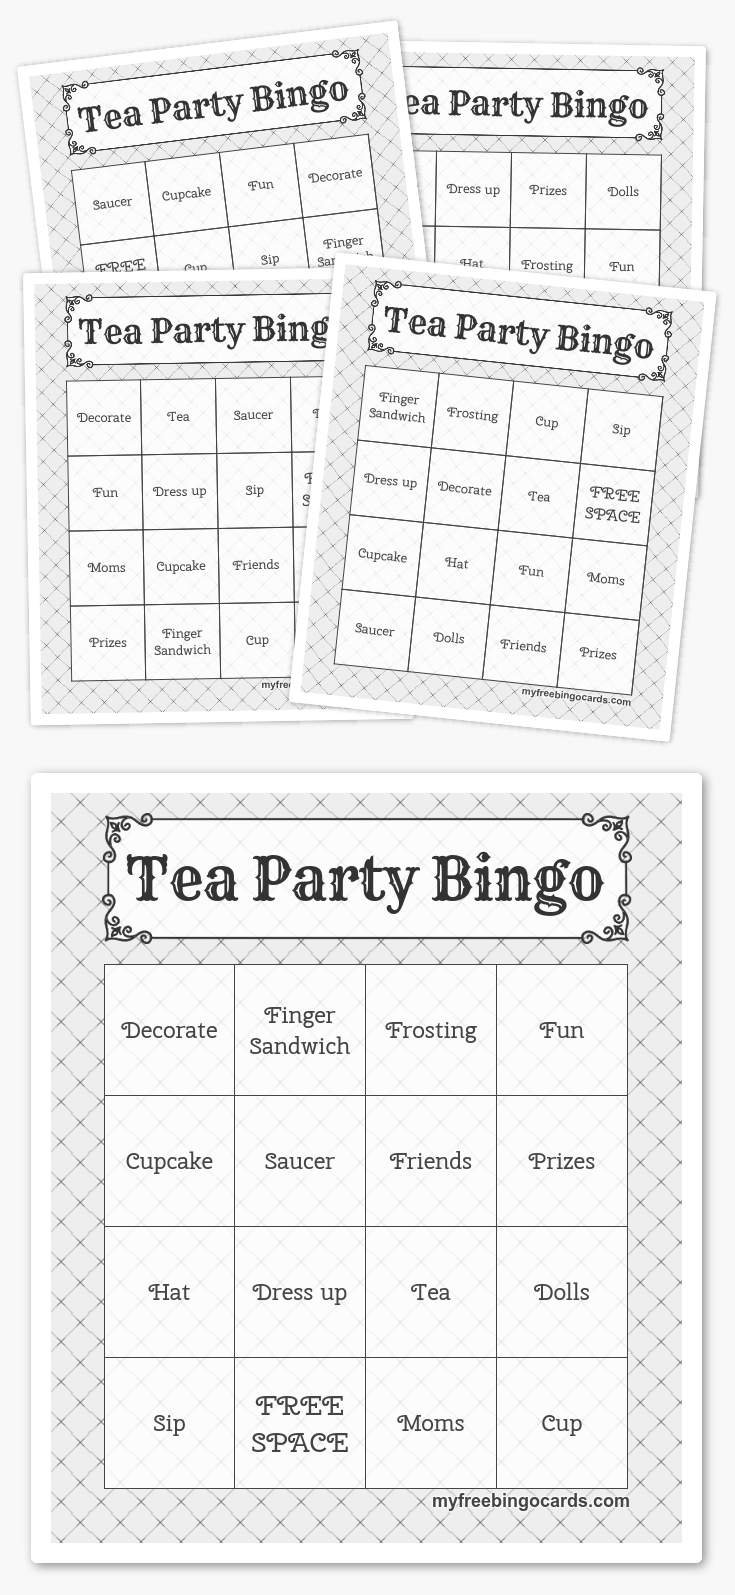 Free Printable Bingo Cards In 2019 | Printables | Pinterest | Harry - Free Printable Tea Party Games